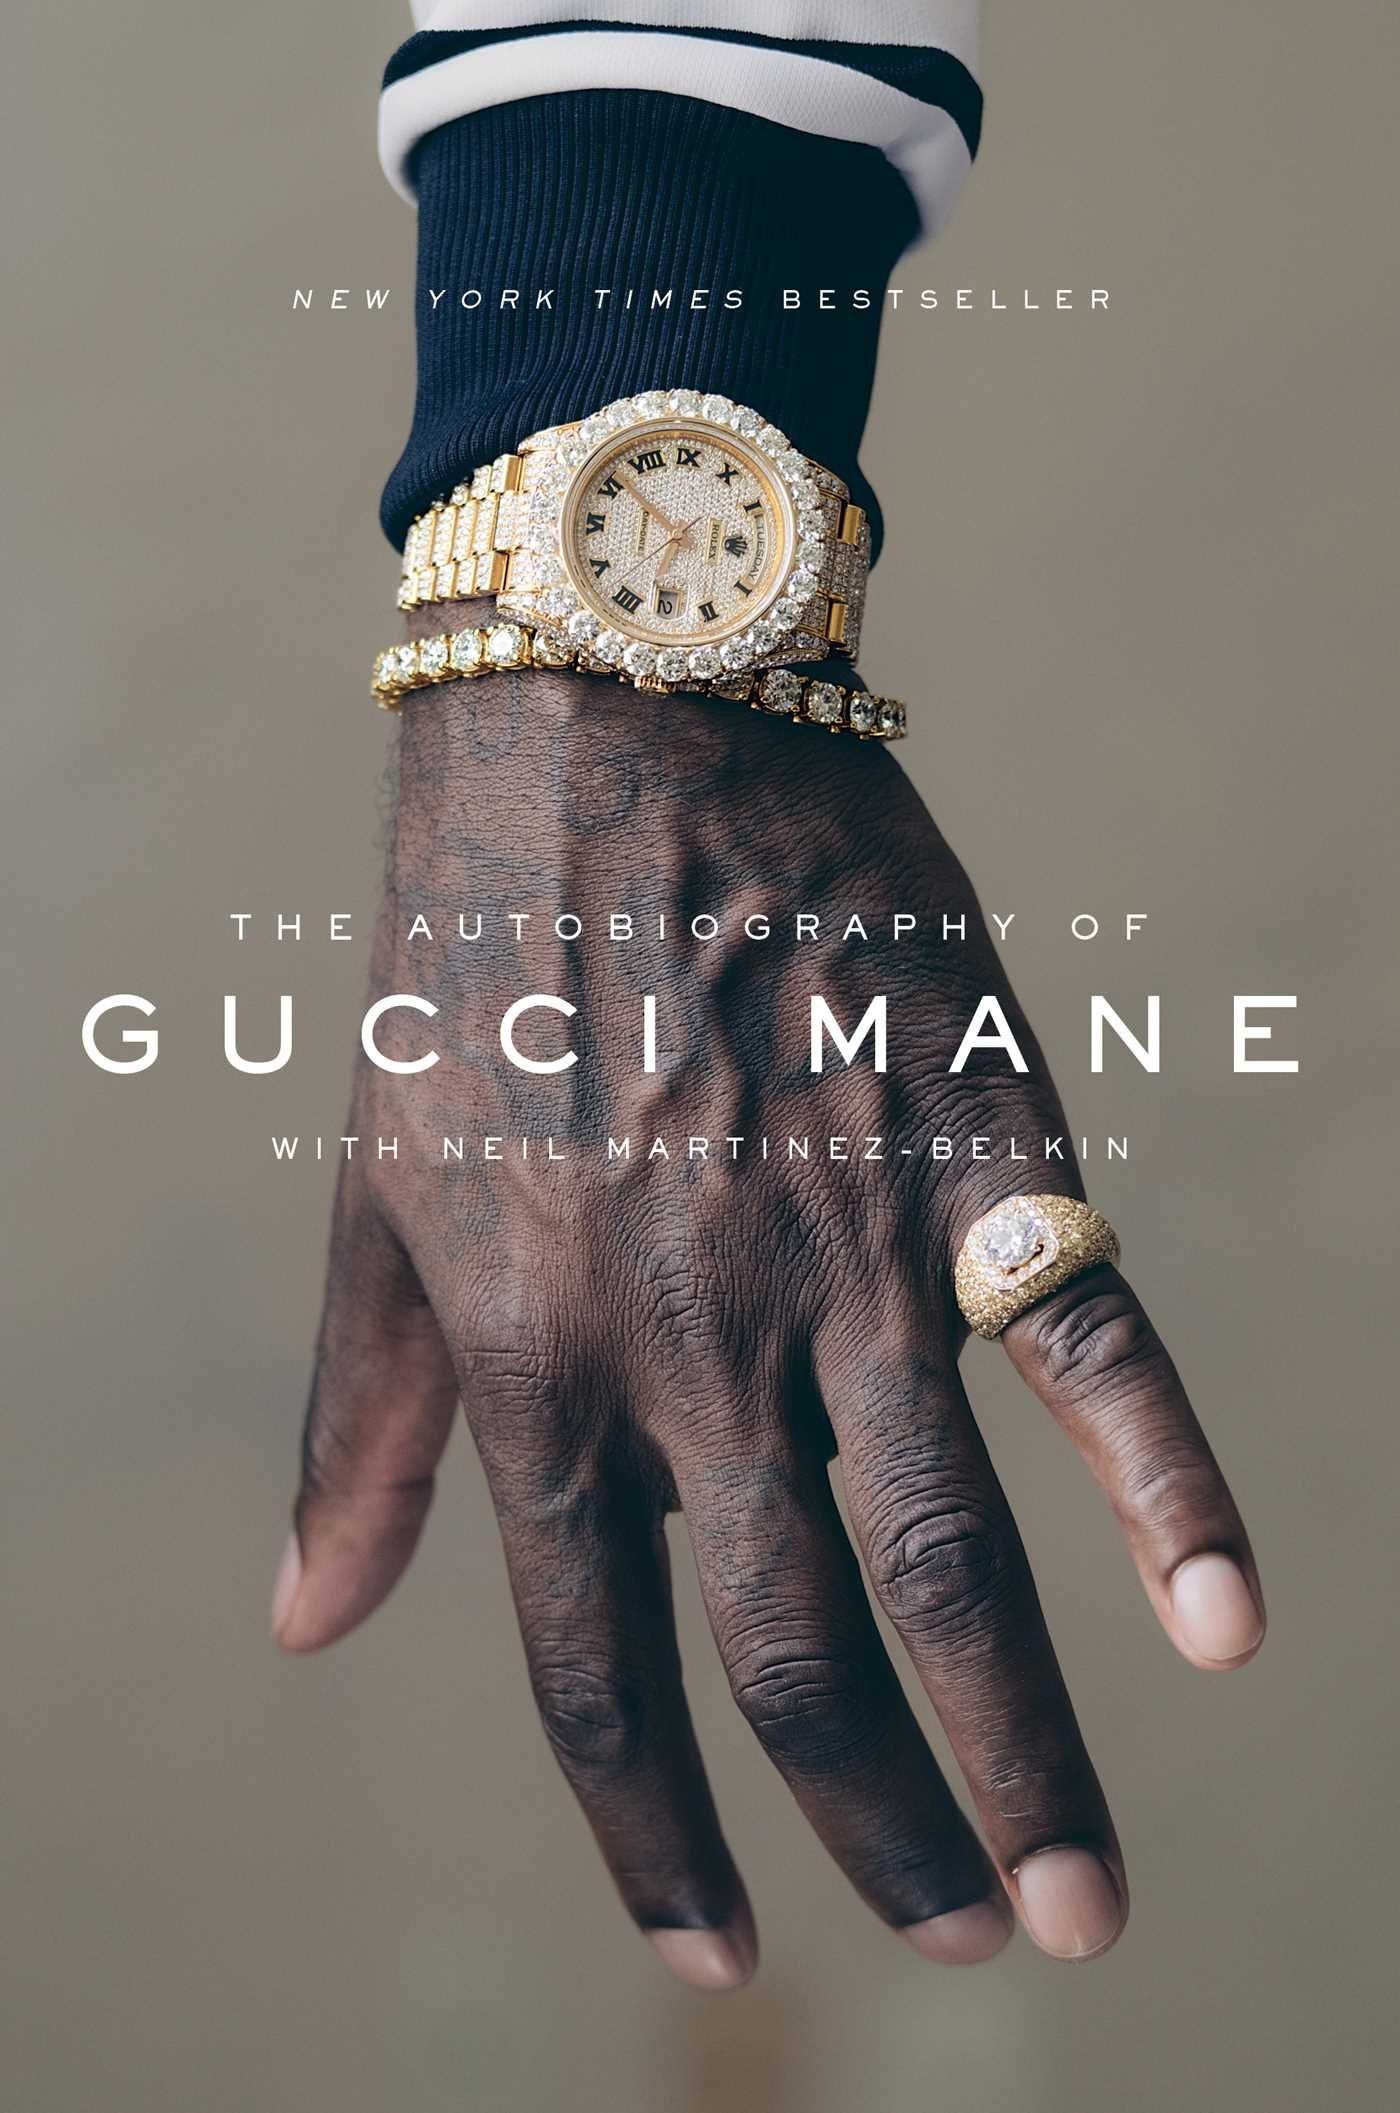 "The Autobiography of Gucci Mane by Gucci Mane with Neil Martinez-Belkin - A fascinating look at the life and story behind the artist, Gucci Mane. Gucci's singles, albums, and mixtapes have been in rotation for me since middle school. His autobiography takes us even deeper and gives us the reader one of the most authentic looks at Gucci's childhood, transition to musician, and beyond. The book tackles the realities and themes of poverty, incarceration, and addiction. Gucci's physical glow-up has been ""#goals"" for many, but through his autobiography readers are able to see the internal glow-up, which I would argue is most important. Gucci Mane indeed shakes off all his demons and is back to himself."